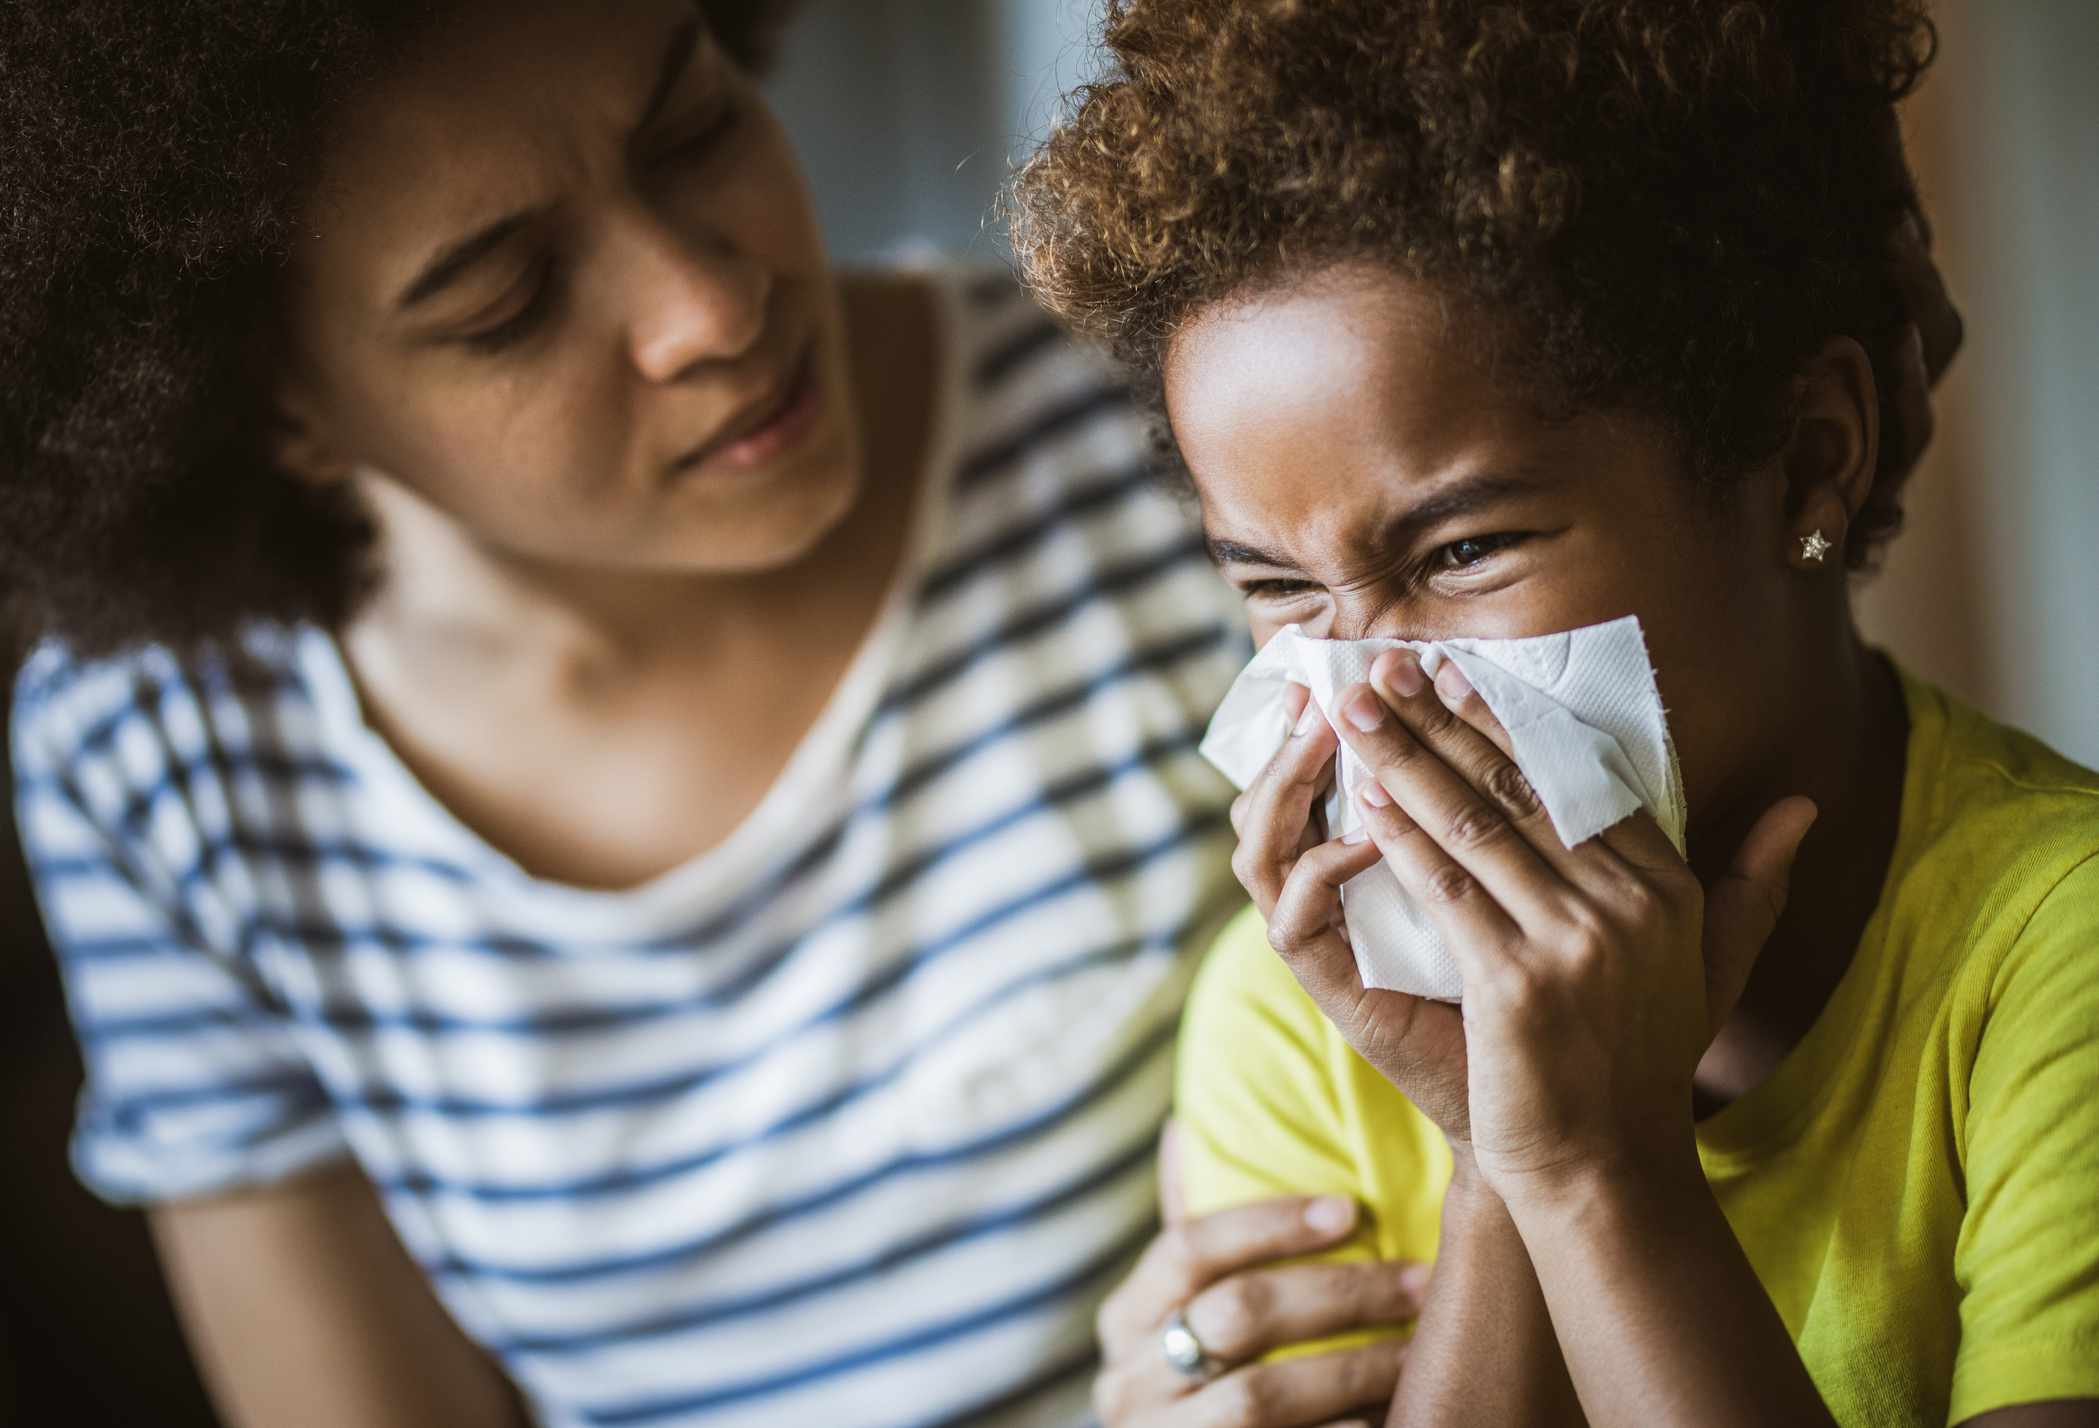 Woman of color looking concerned at child of color blowing nose